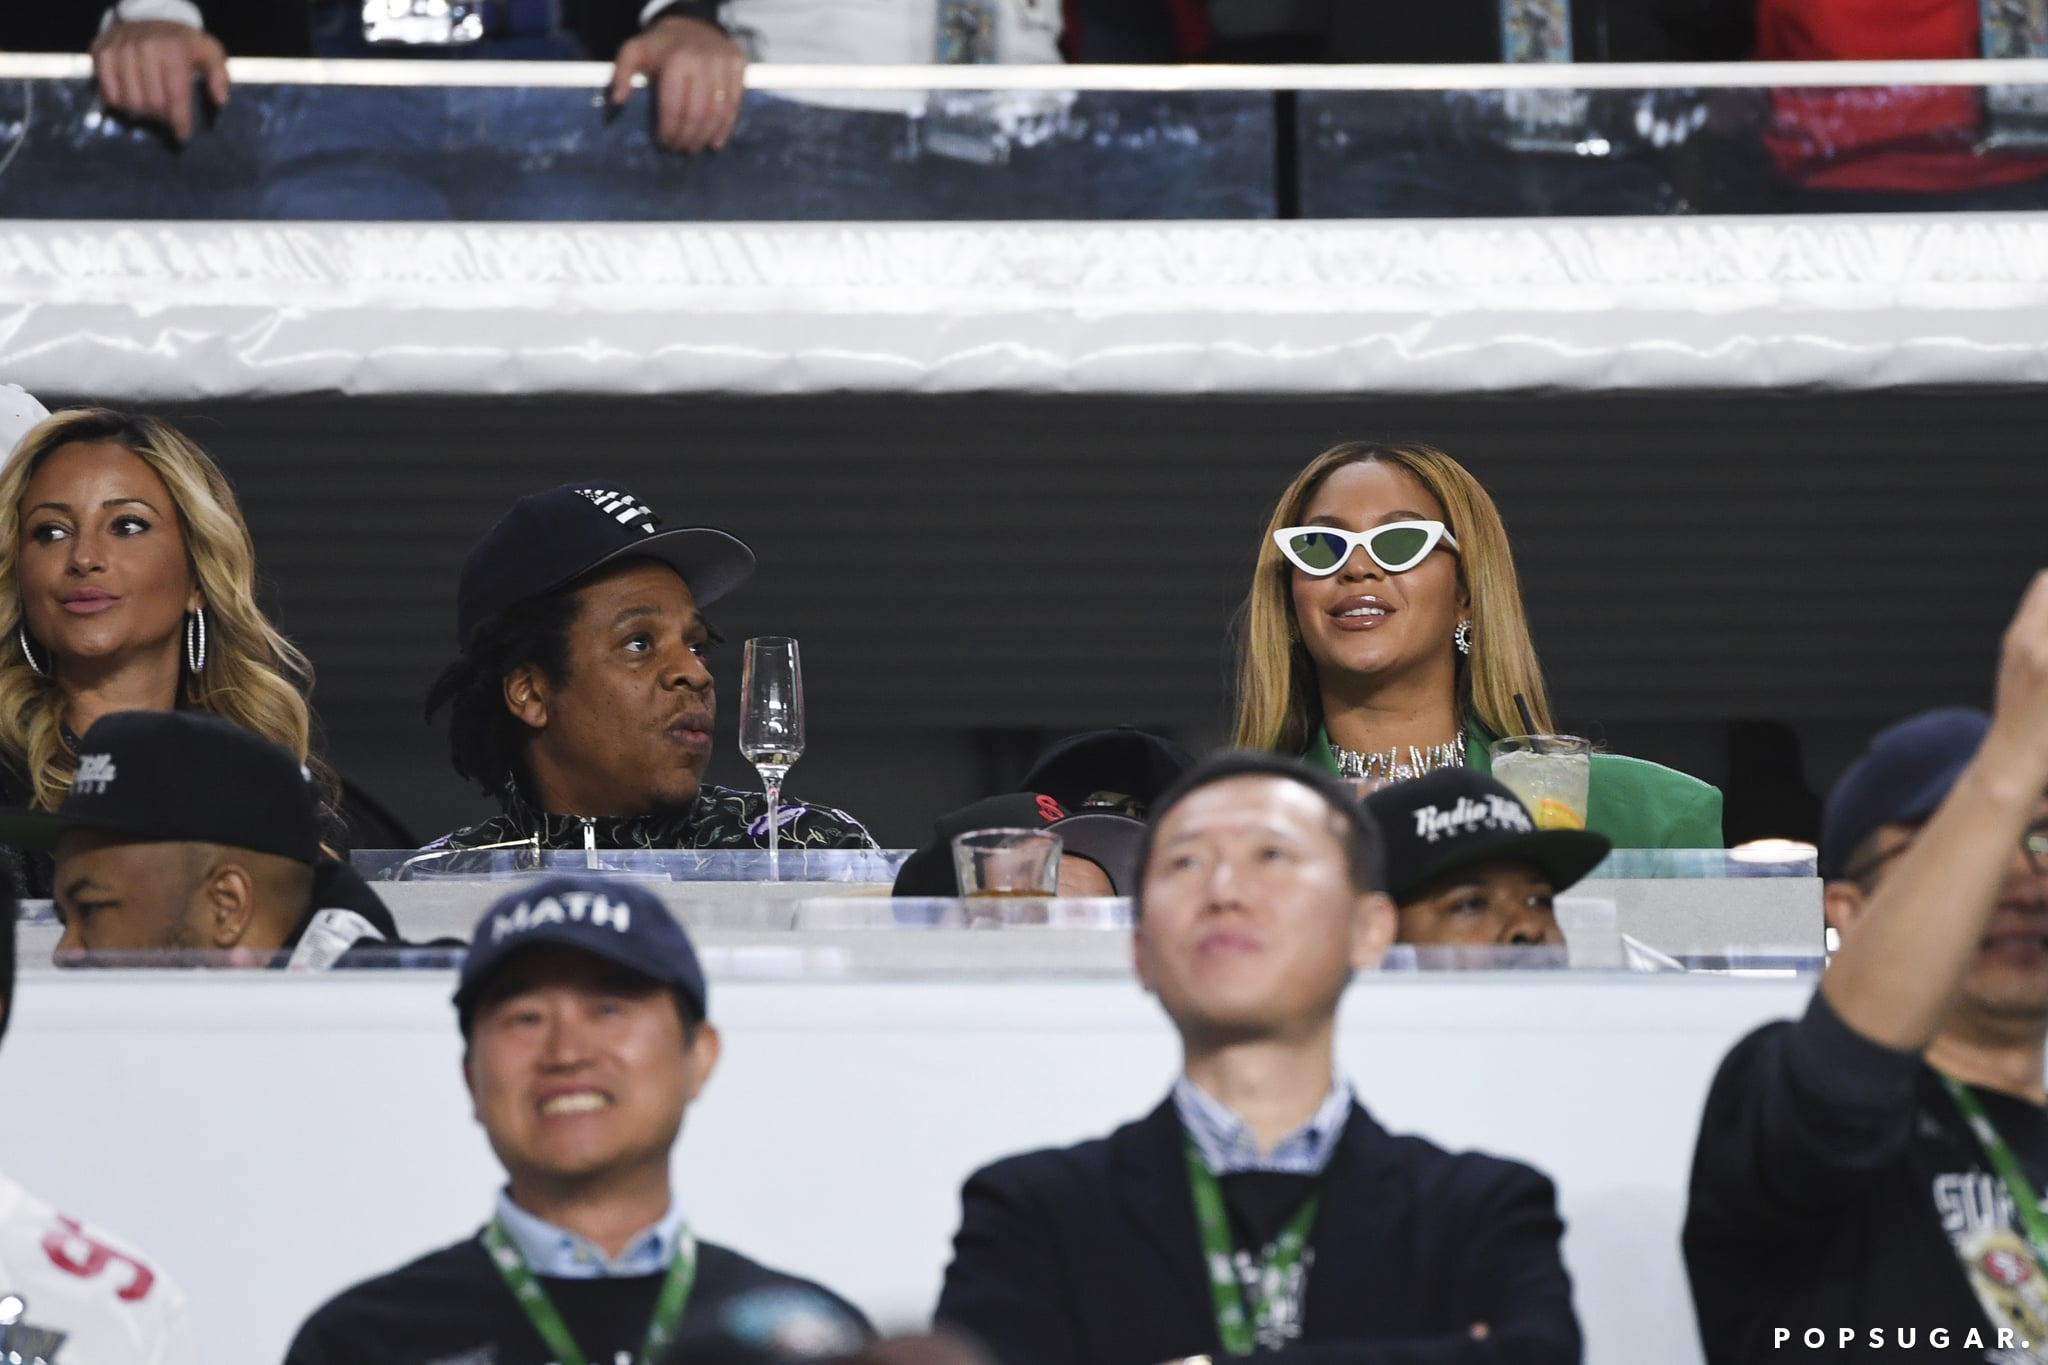 Jay-Z and Beyonce Knowles watch Super Bowl LIV between the San Francisco 49ers and the Kansas City Chiefs held at Hard Rock Stadium in Miami Gardens, Florida on Feb. 2, 2020. (Photo by Anthony Behar/Sipa USA)(Sipa via AP Images)